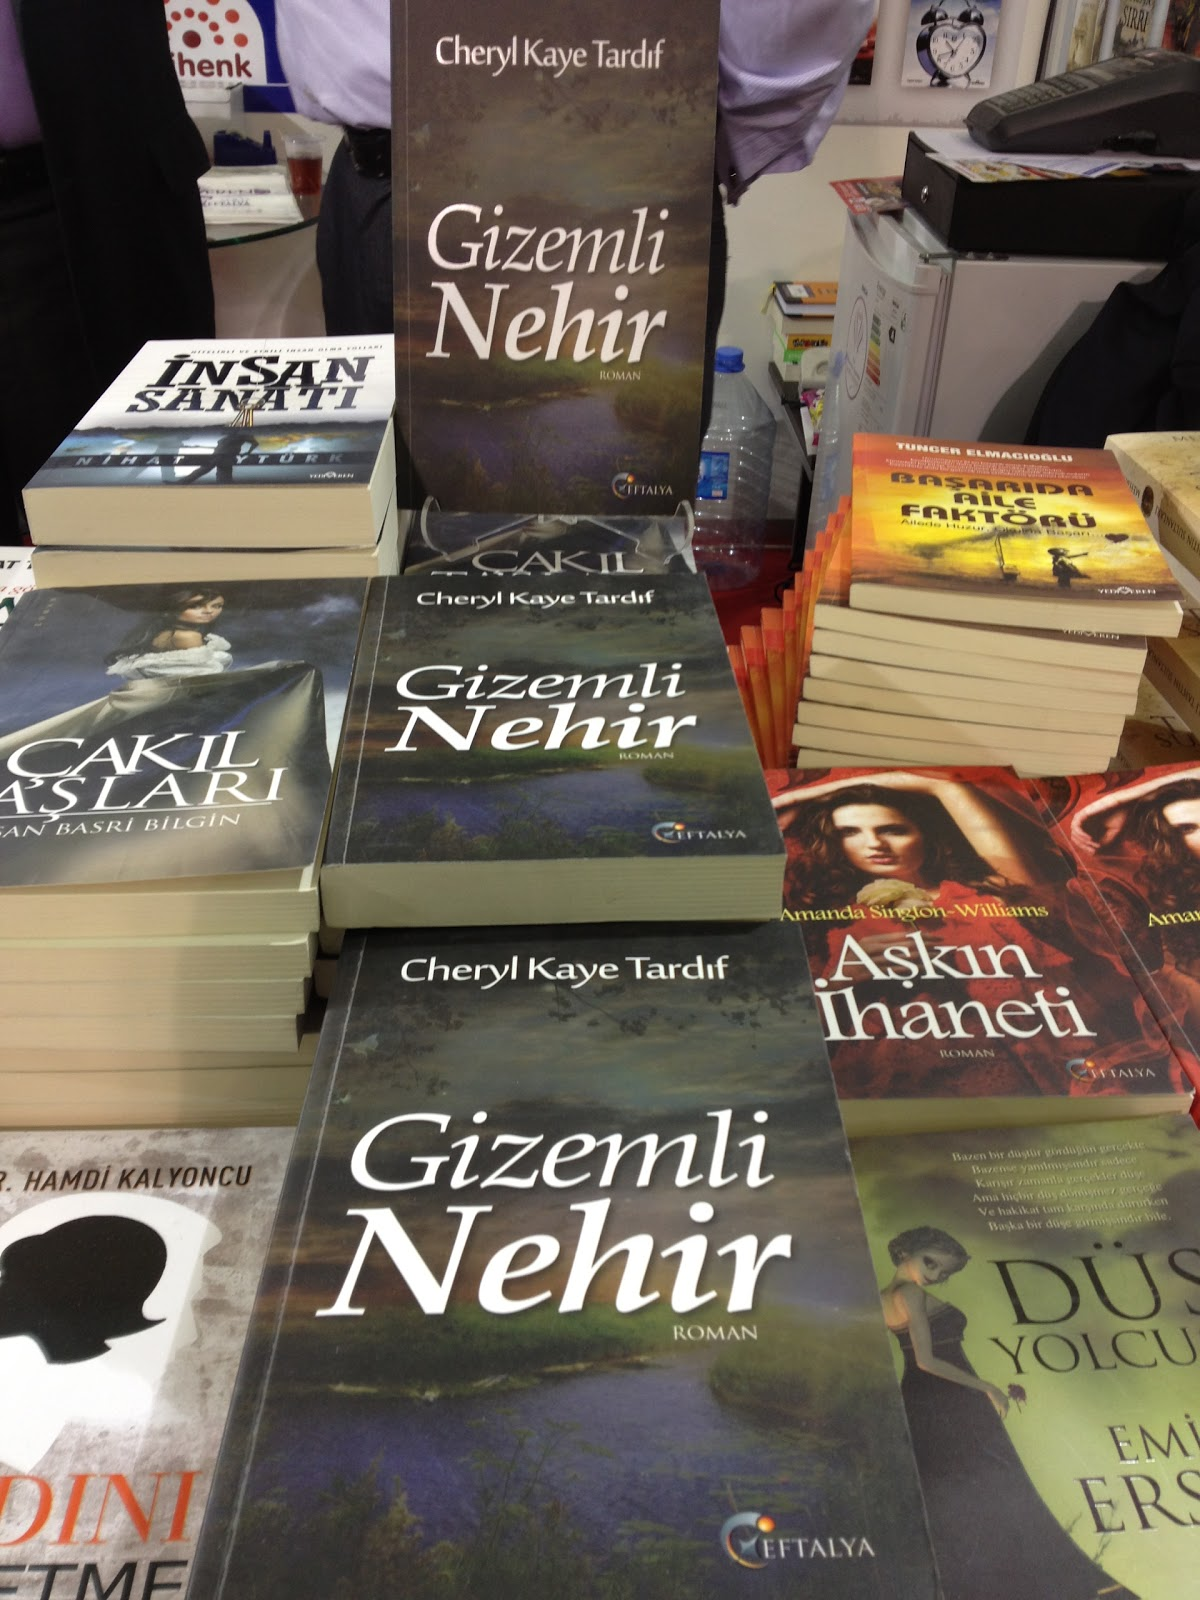 The teacher then went to the istanbul book fair, and tonight on